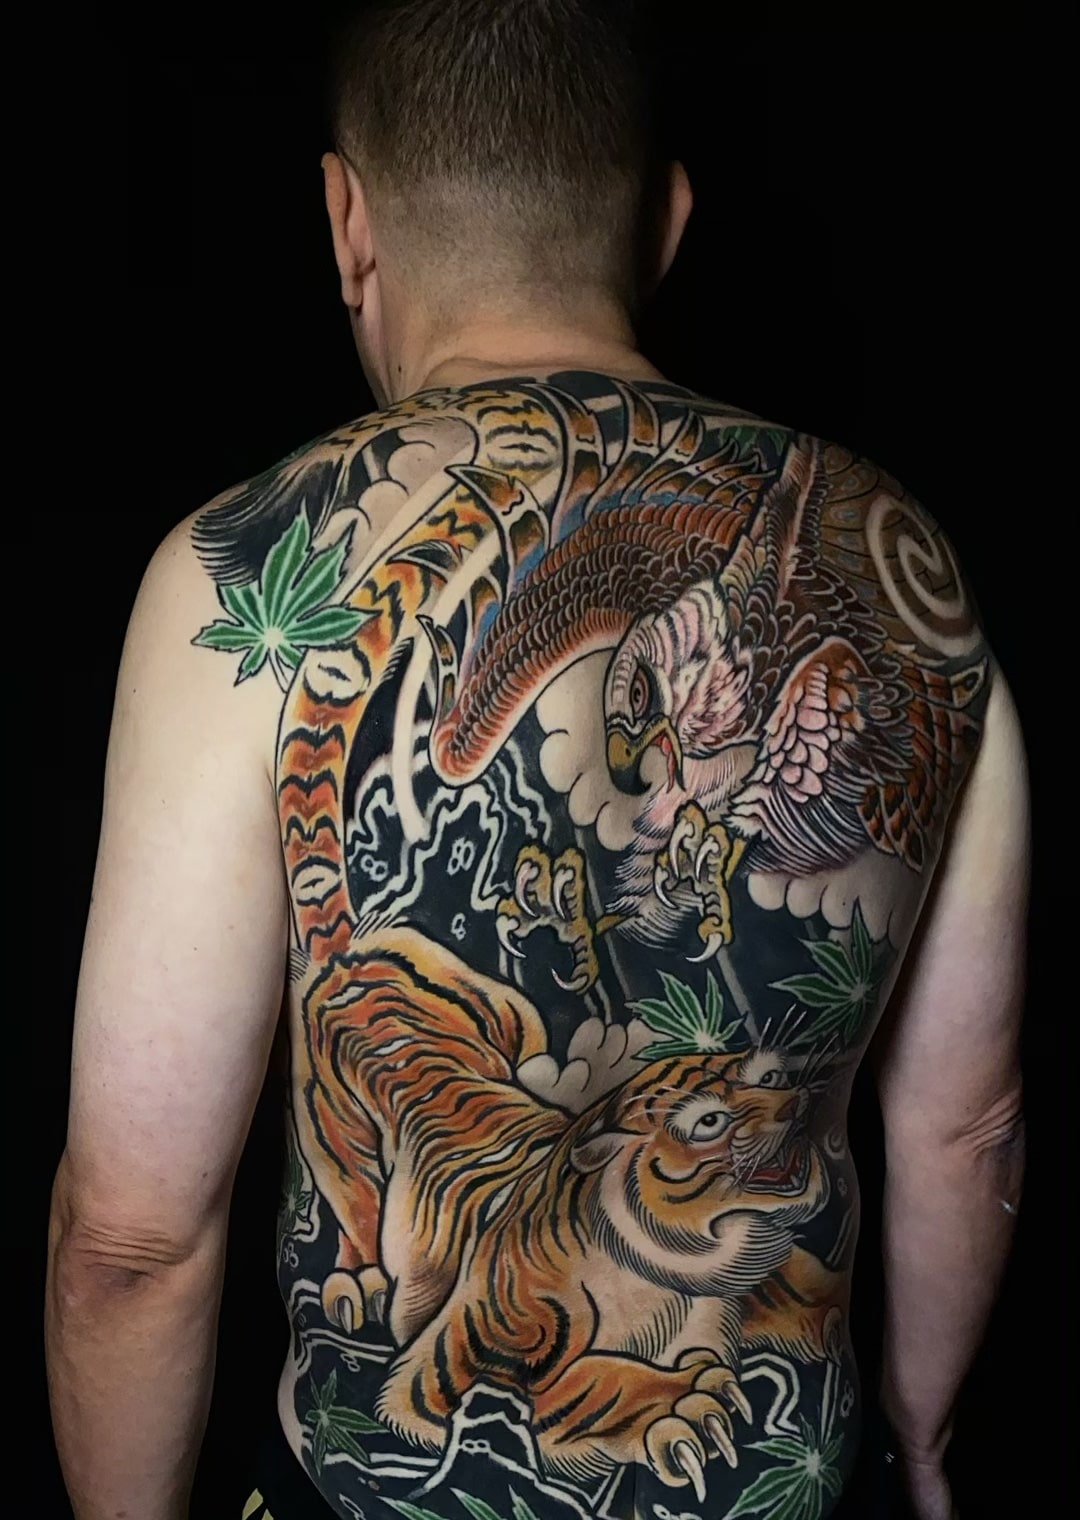 luis-cabezas-japanese-tiger-hawk-tattoo-back-from-the-left